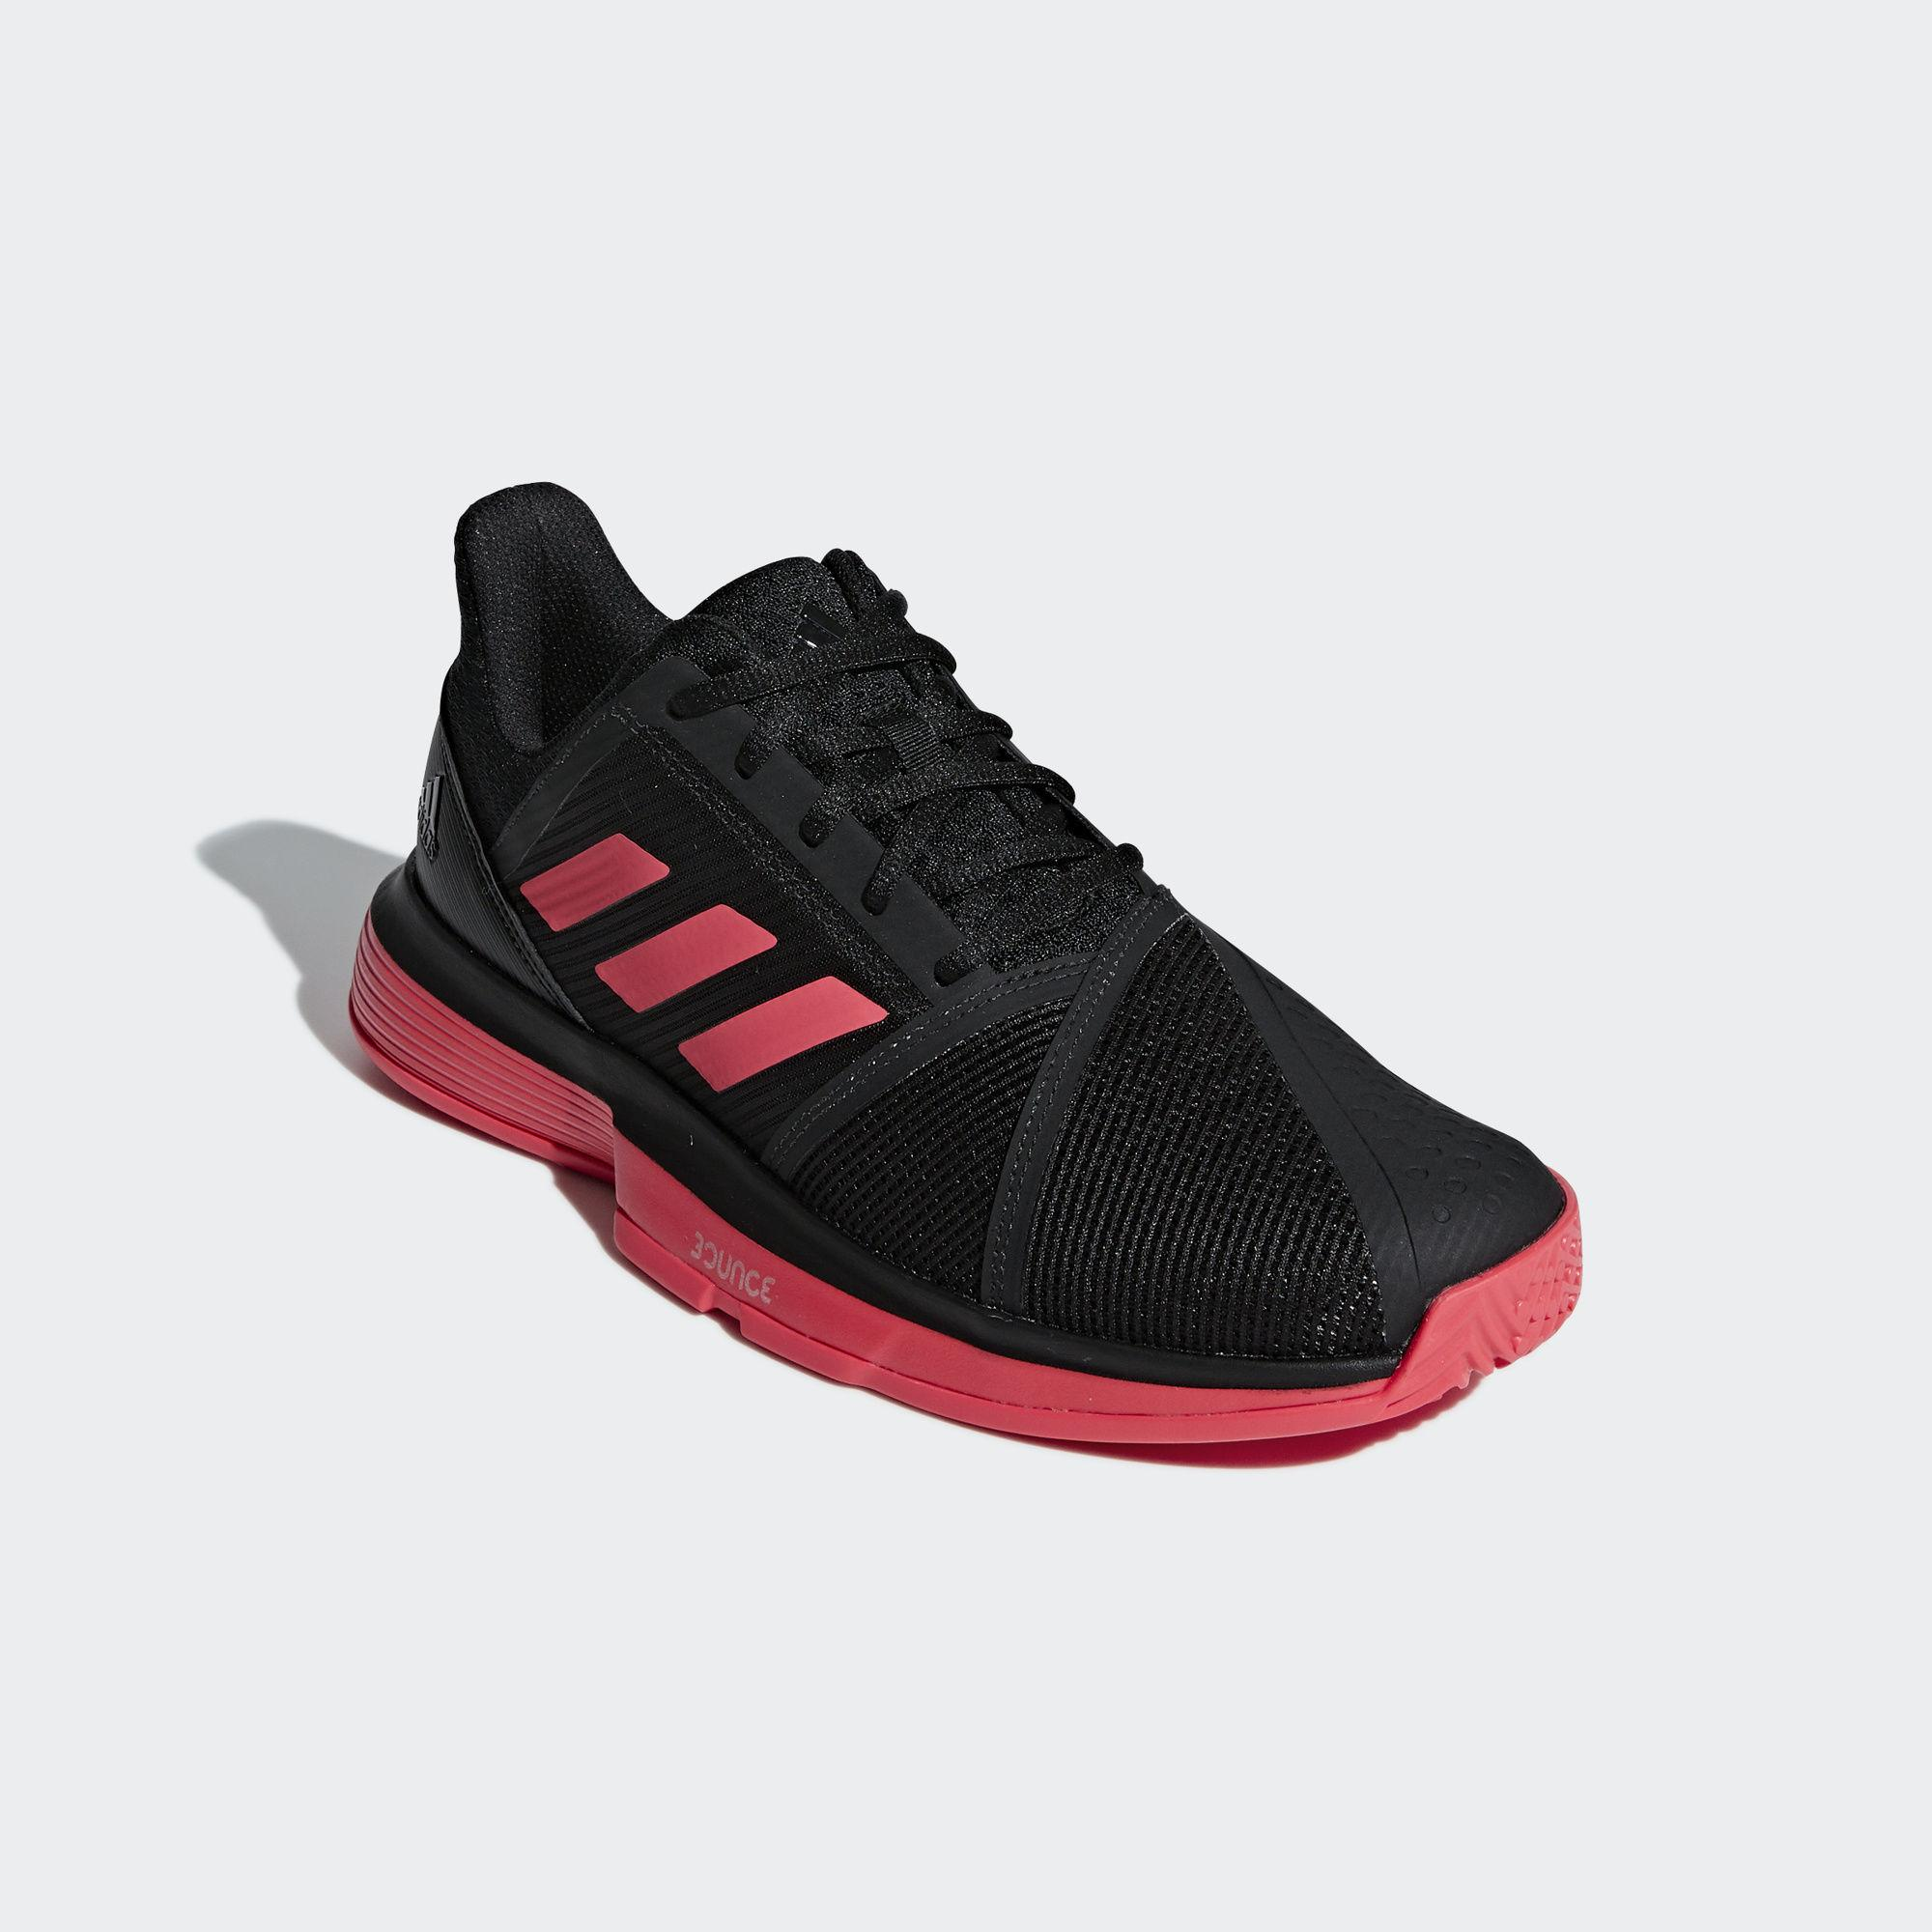 36e9ed1dcac0f Adidas Mens CourtJam Bounce Tennis Shoes - Core Black Shock Red ...